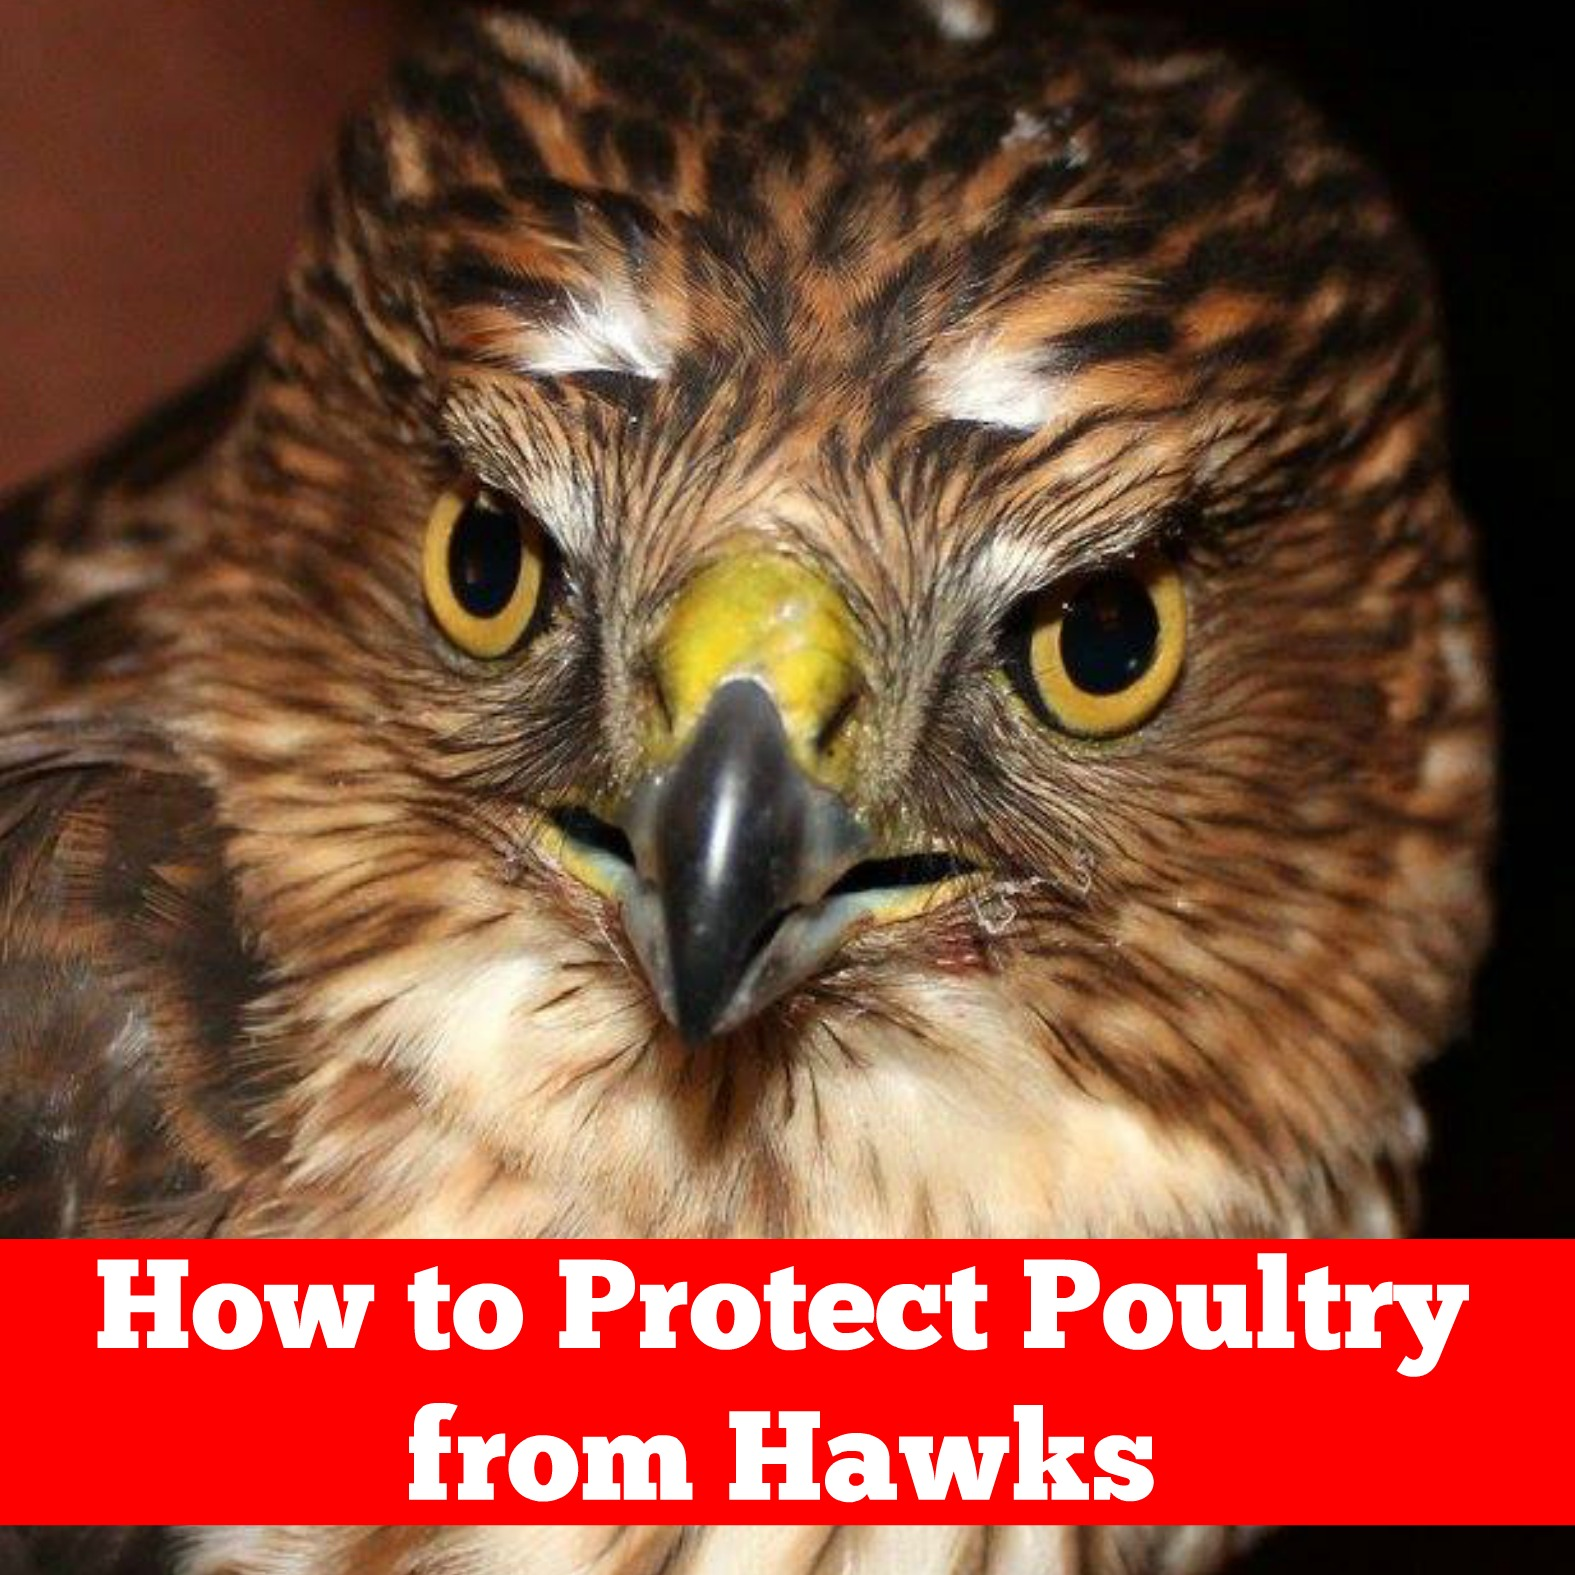 How to Protect Poultry from Hawks